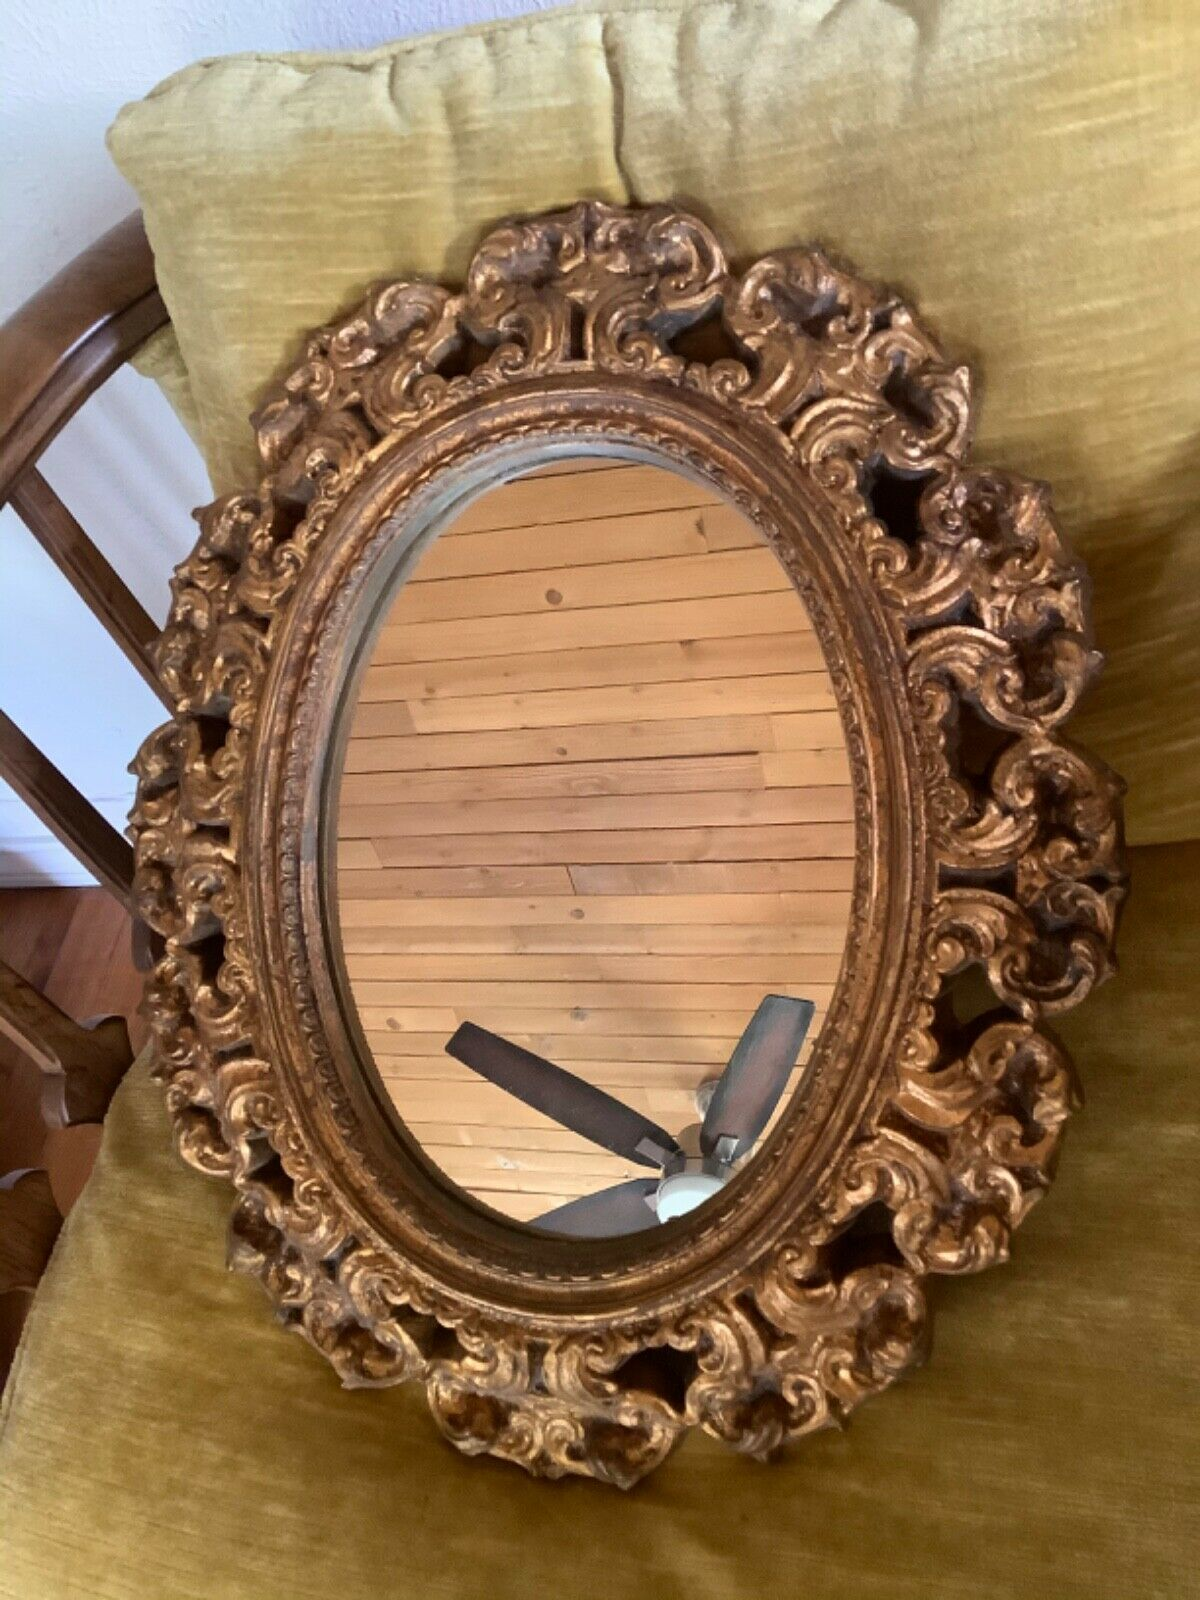 "Vtg Oval Gold gilt Mirror Hand Carved Wood Frame framed Wall Decor 19"" x 16"""